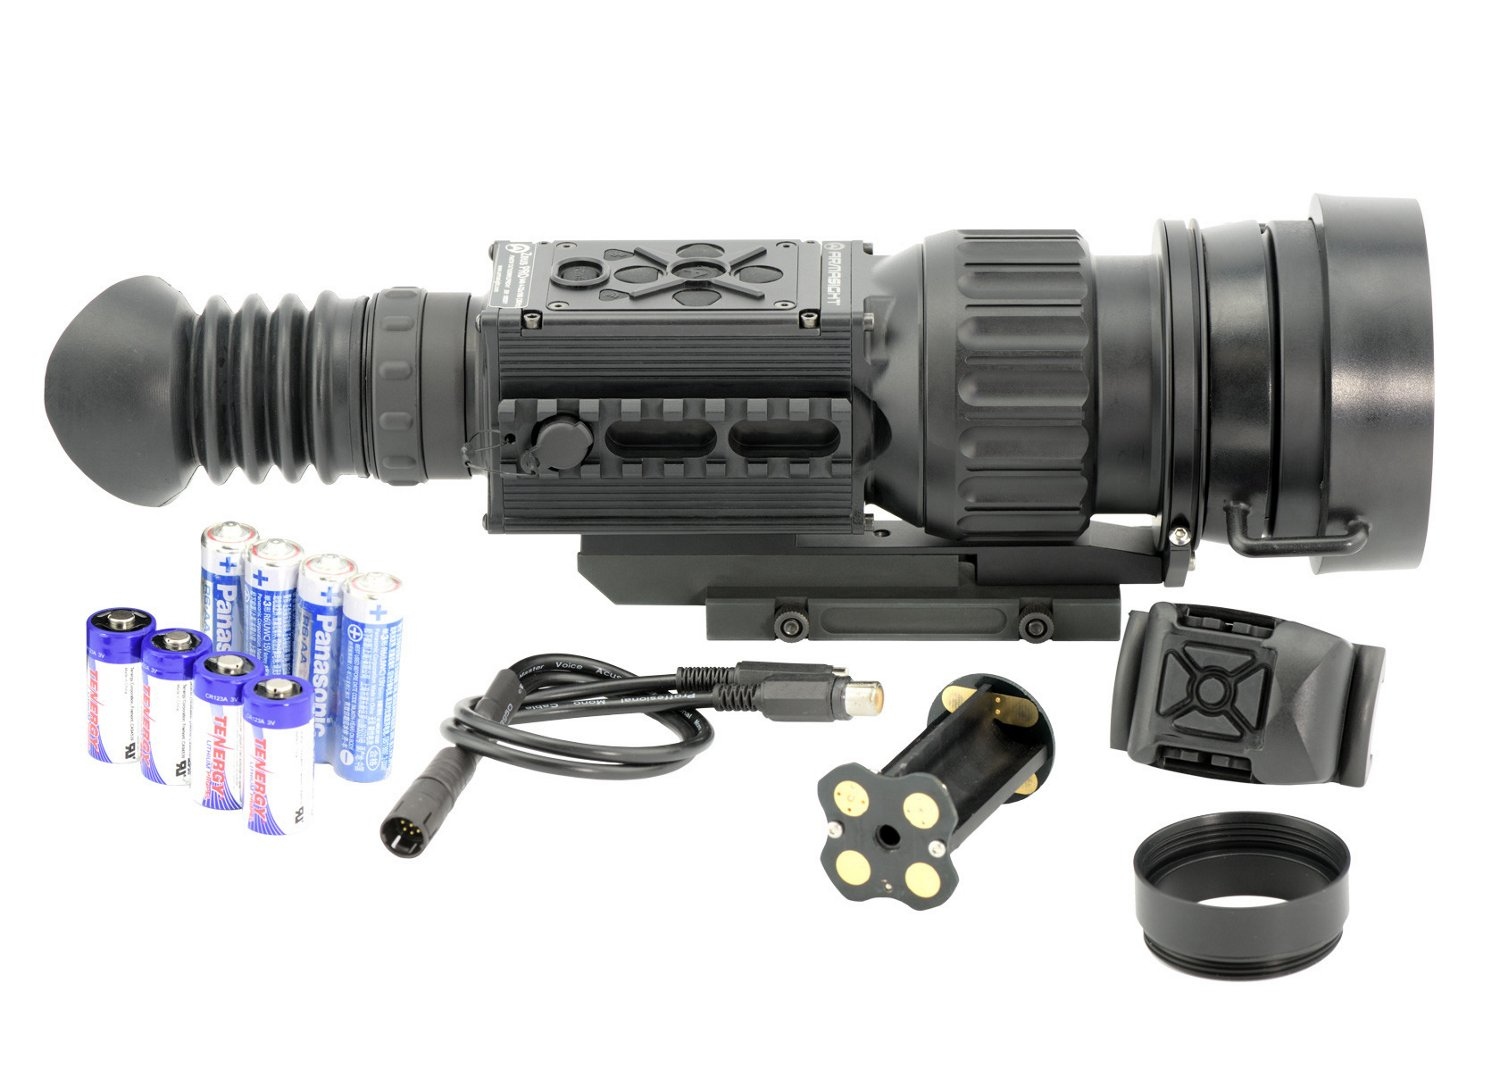 Armasight Zeus-Pro 640 4 - 32 x 100 30 Hz Thermal Imaging Weapon Sight - view number 1